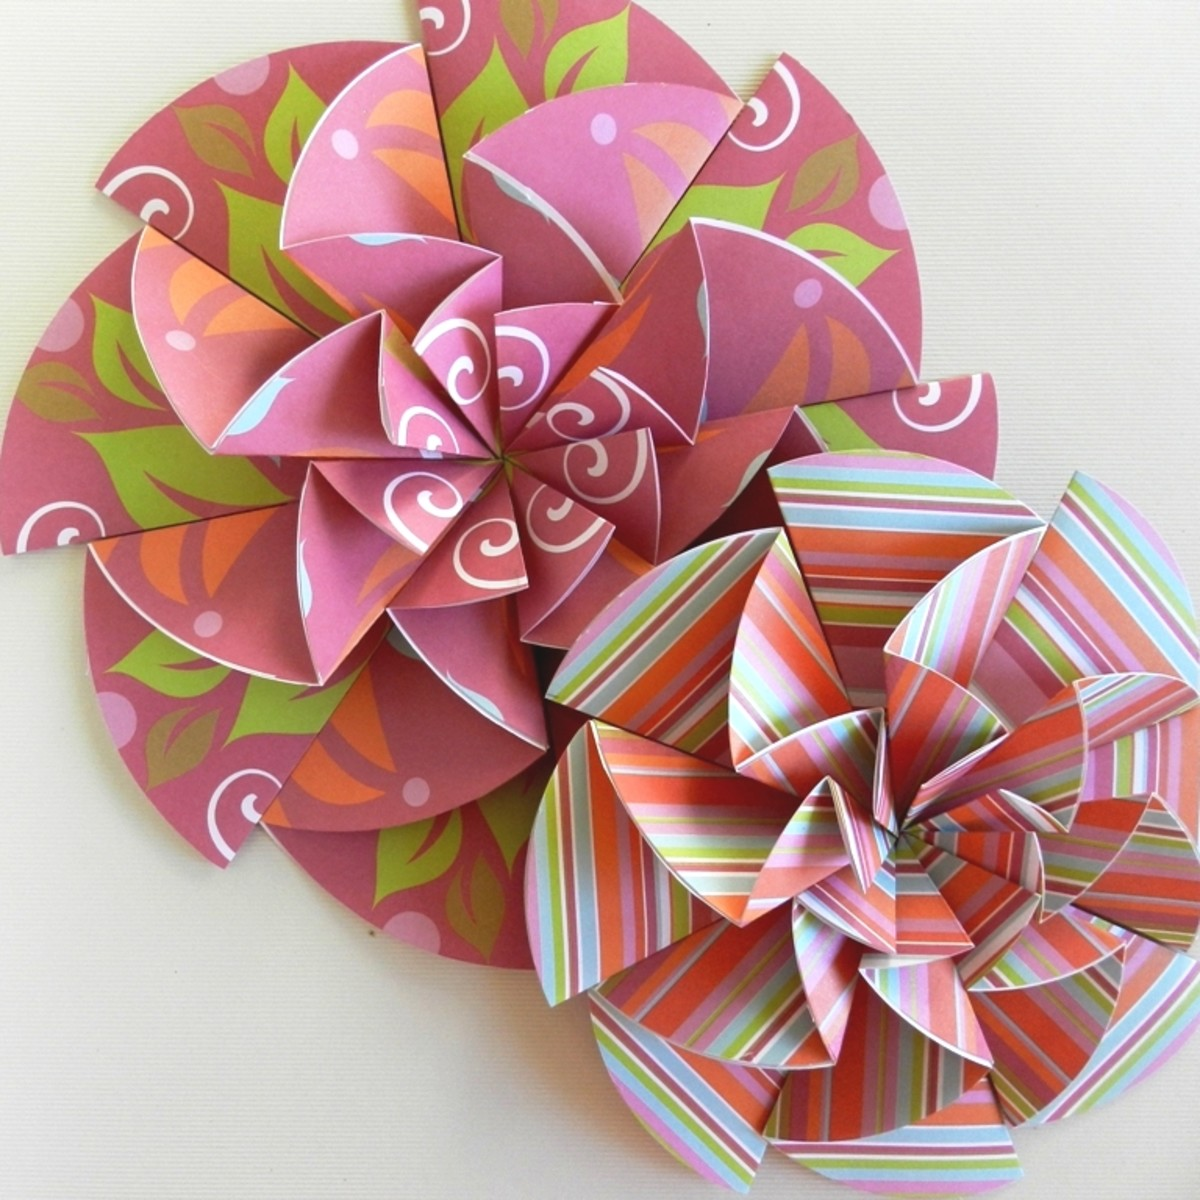 Stunning Paper Rosettes for Party Decor